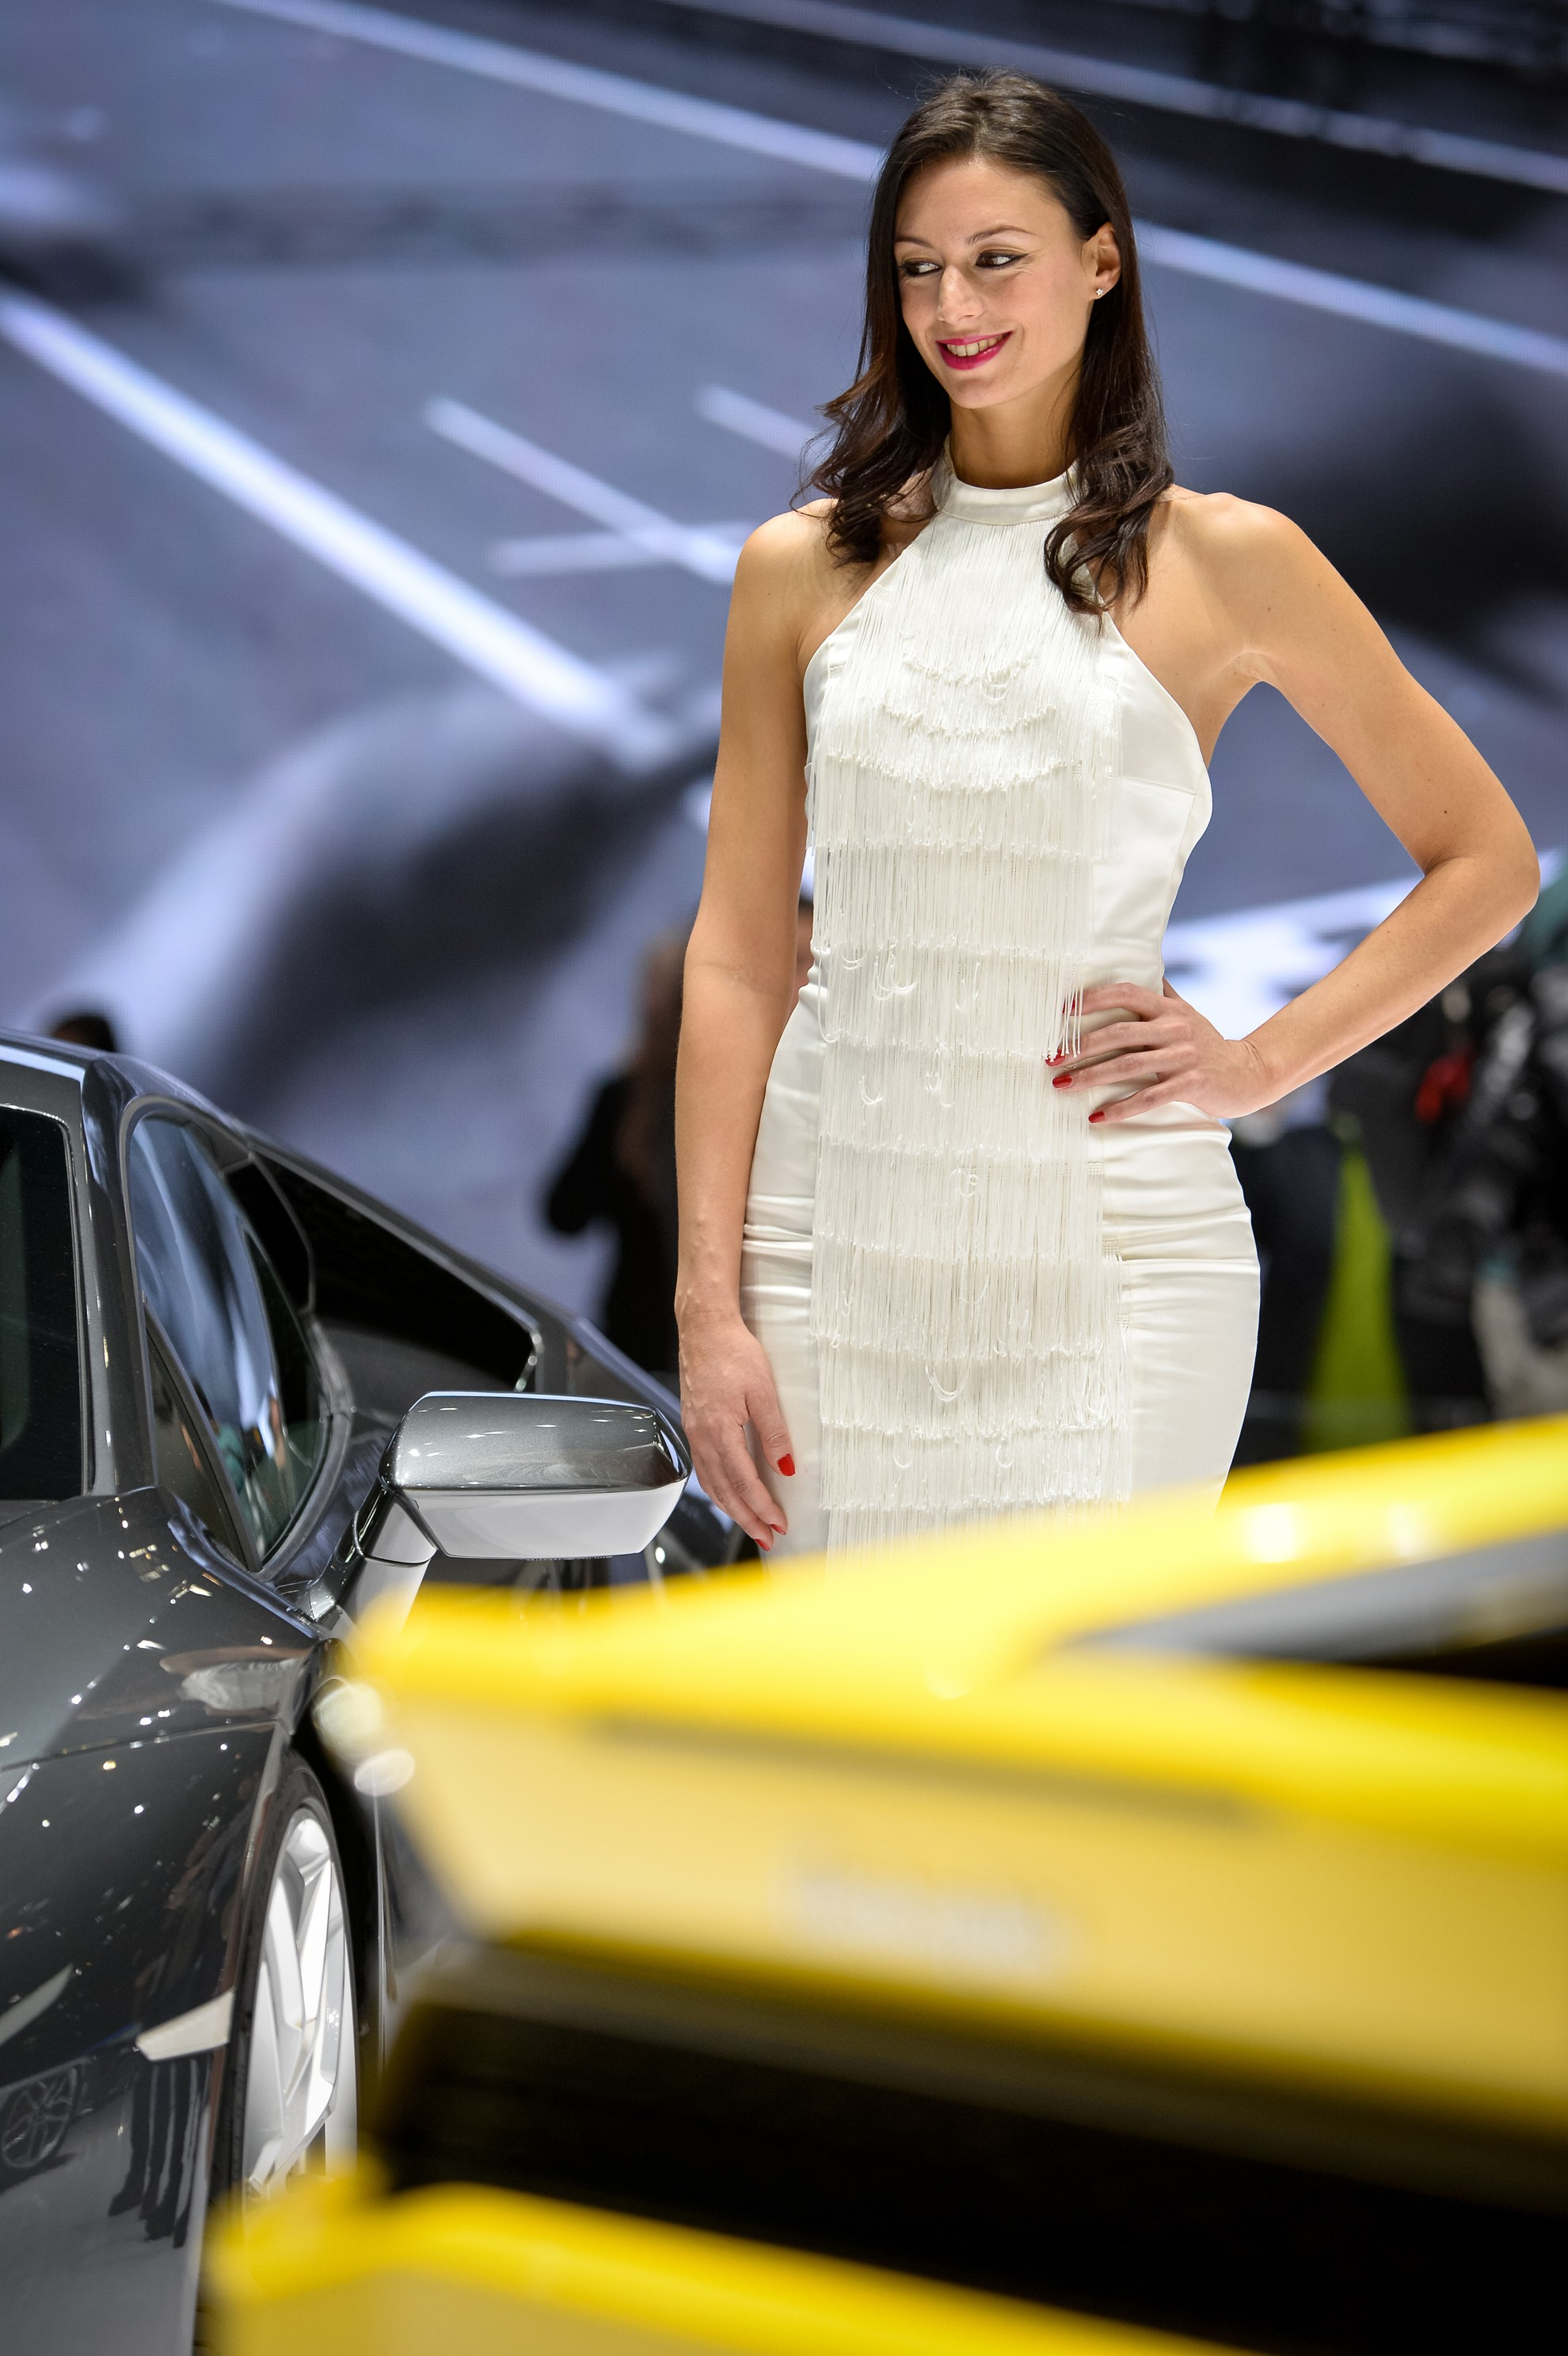 Car-Show-Girls-Ferrari